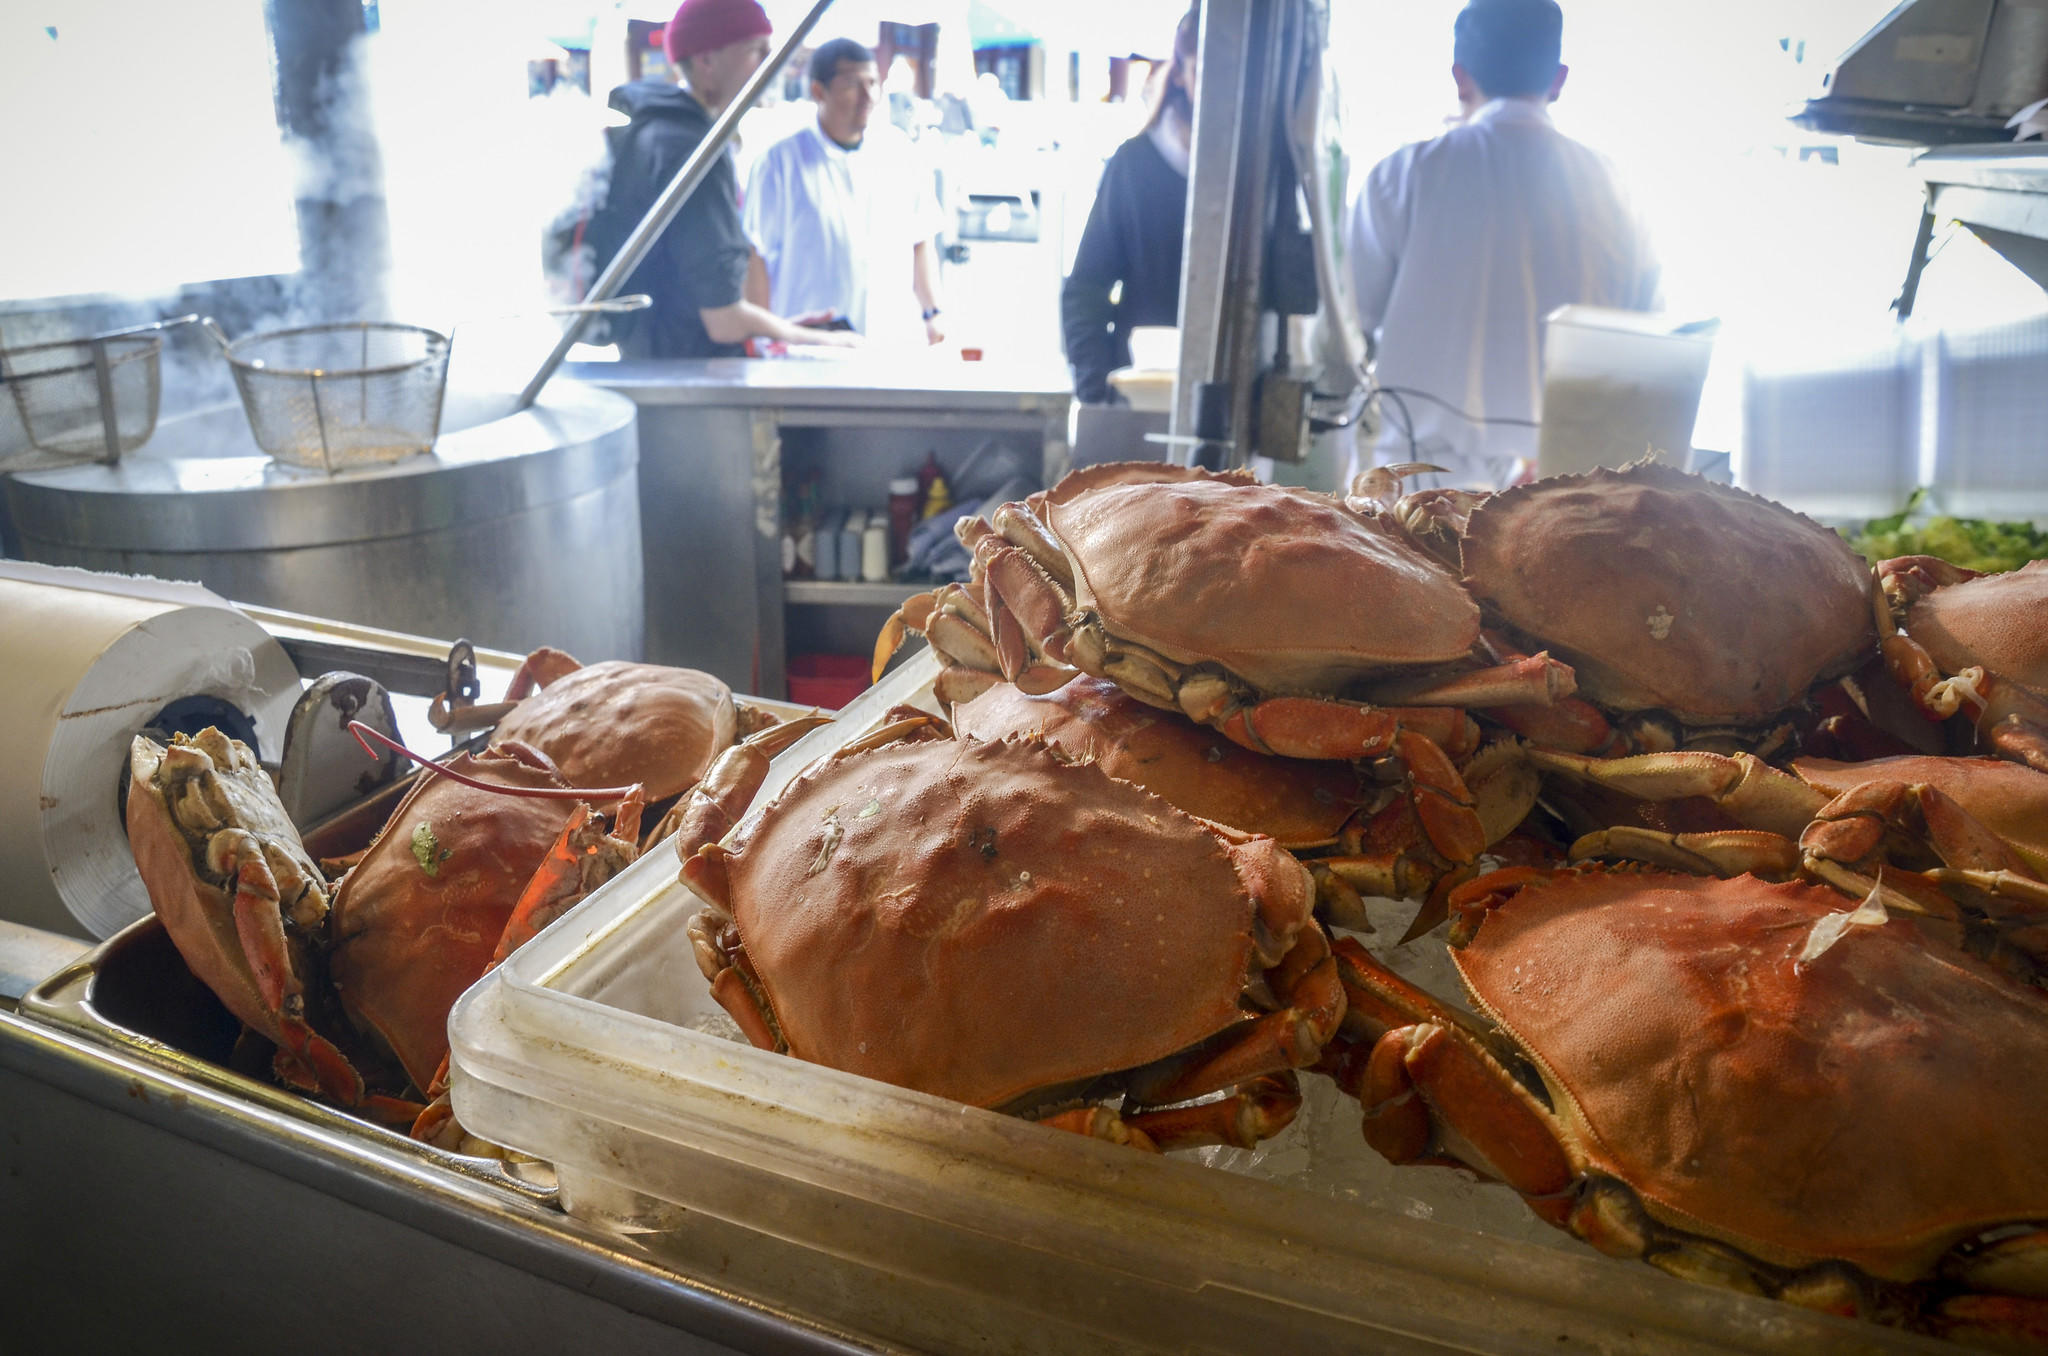 Crab stand at Fisherman's Wharf, San Francisco.